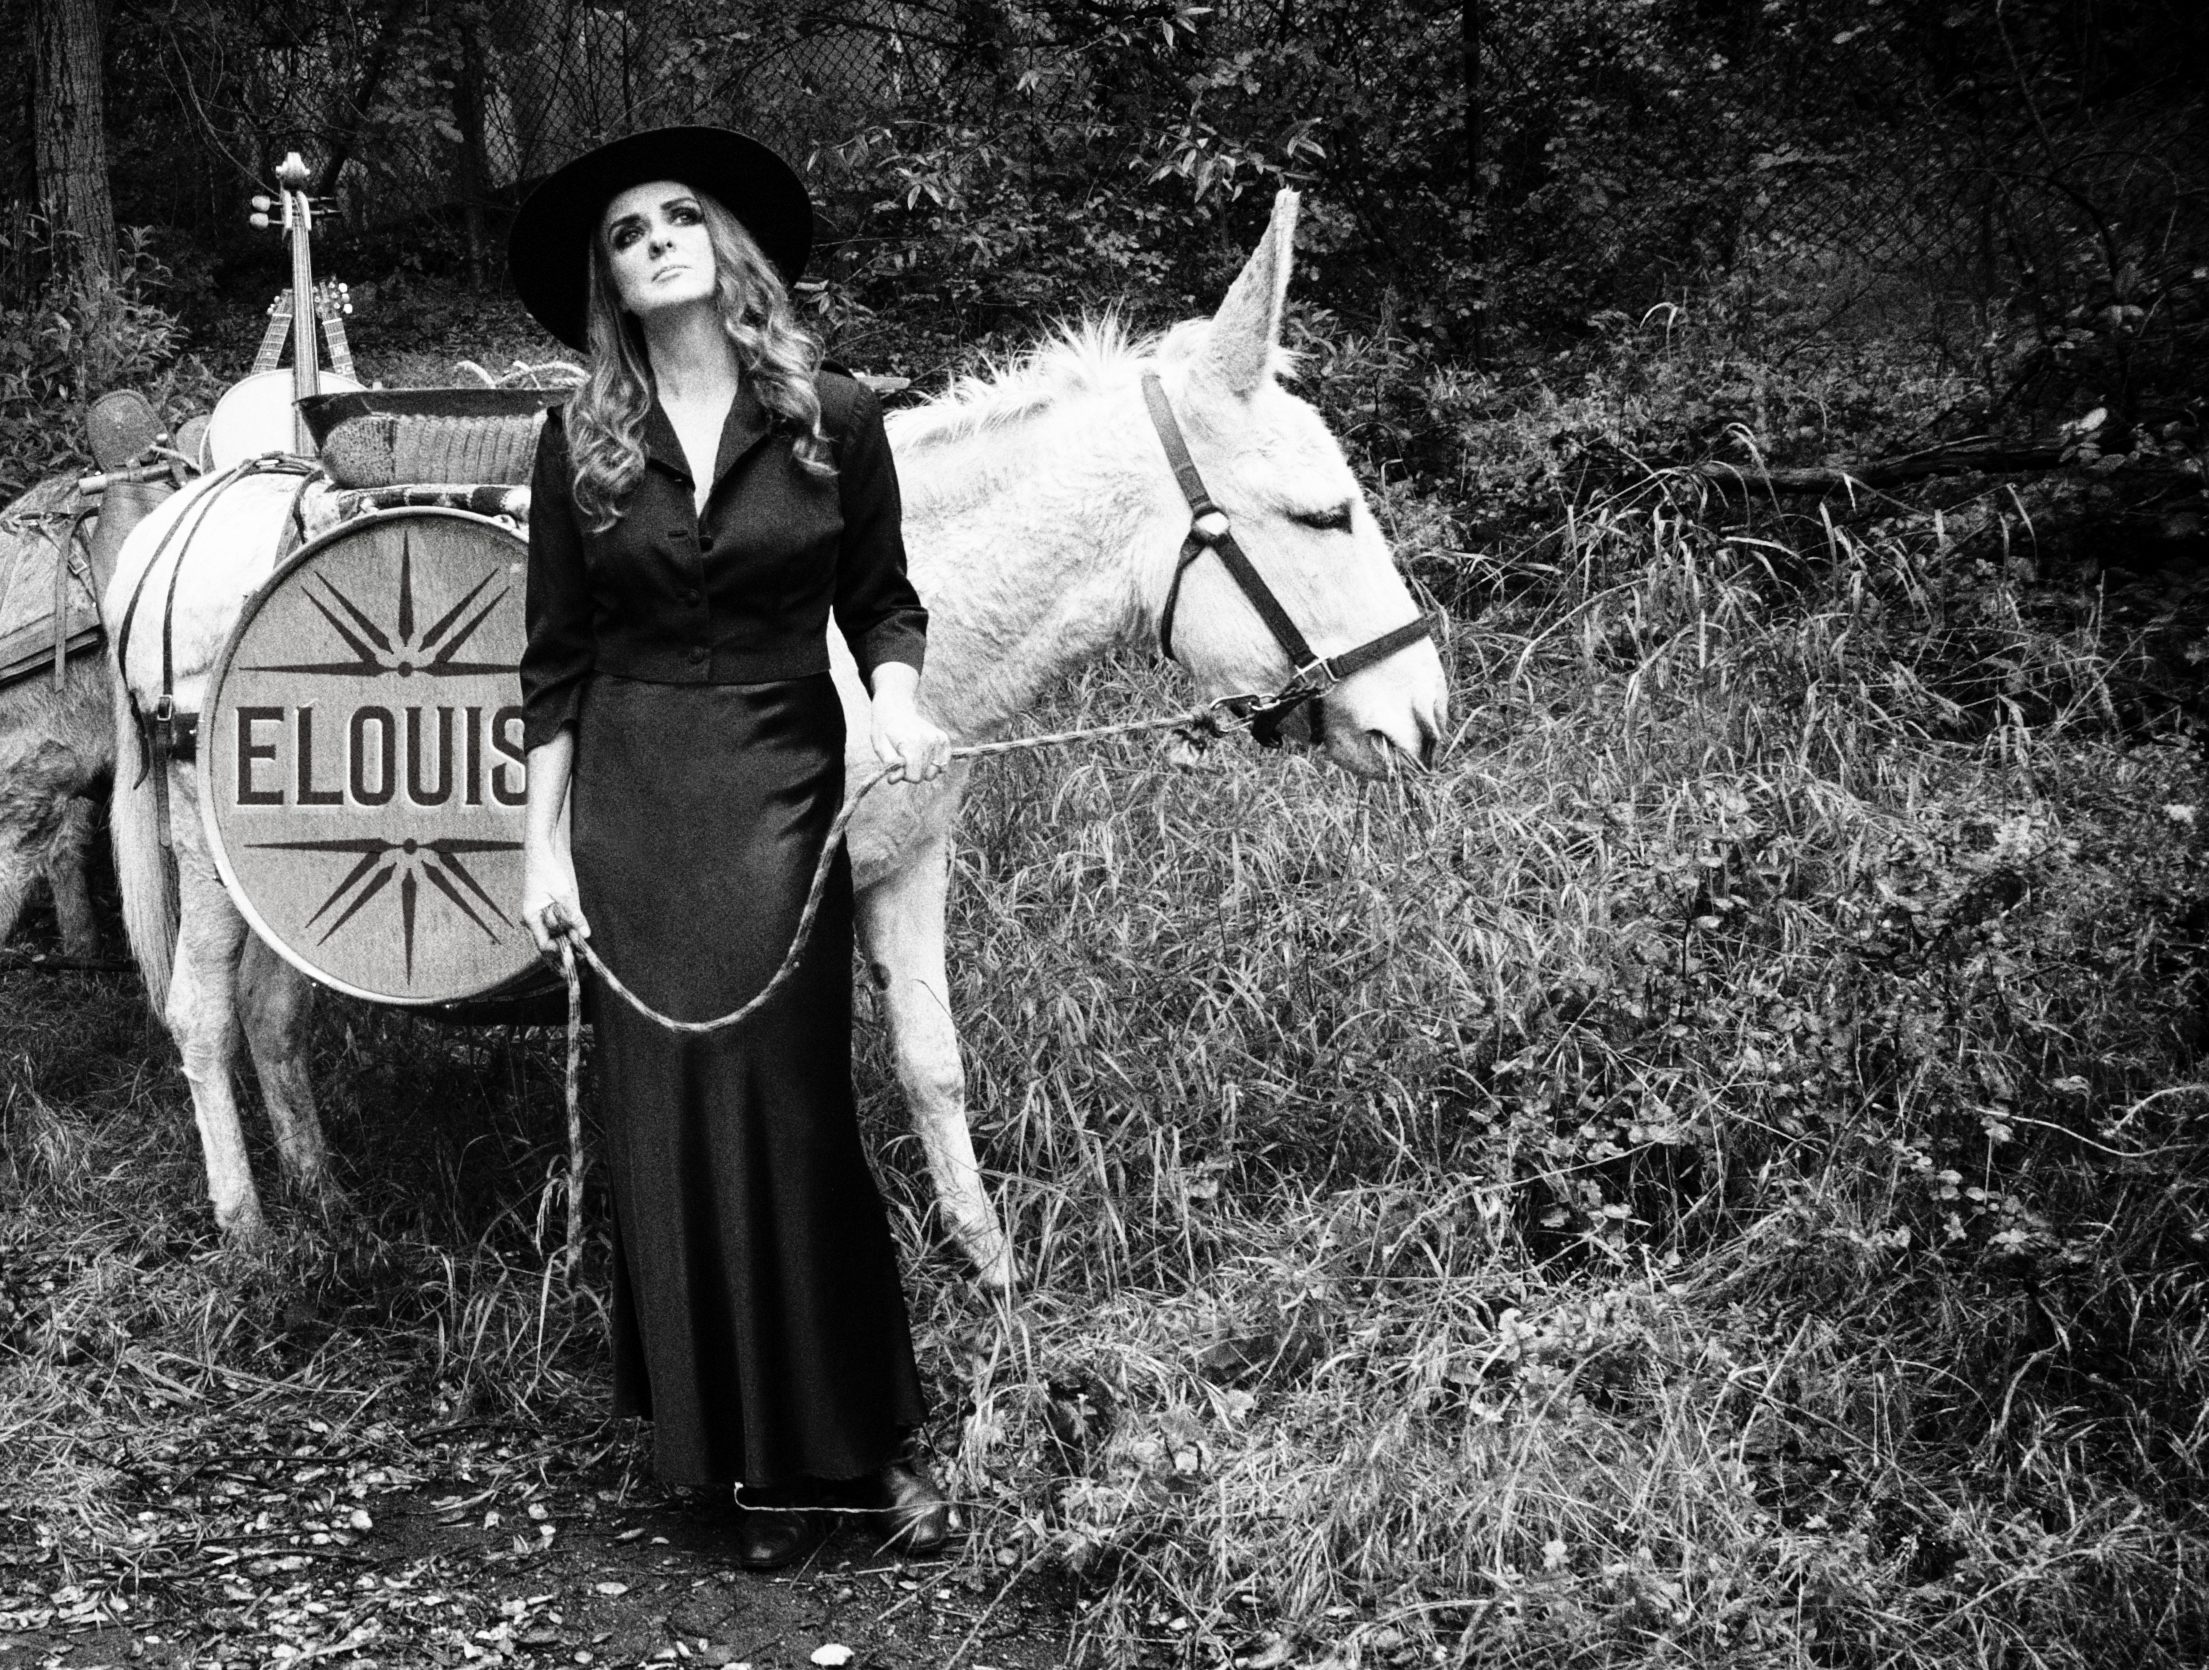 LISTEN: Elouise, 'Shadows of the Pines'